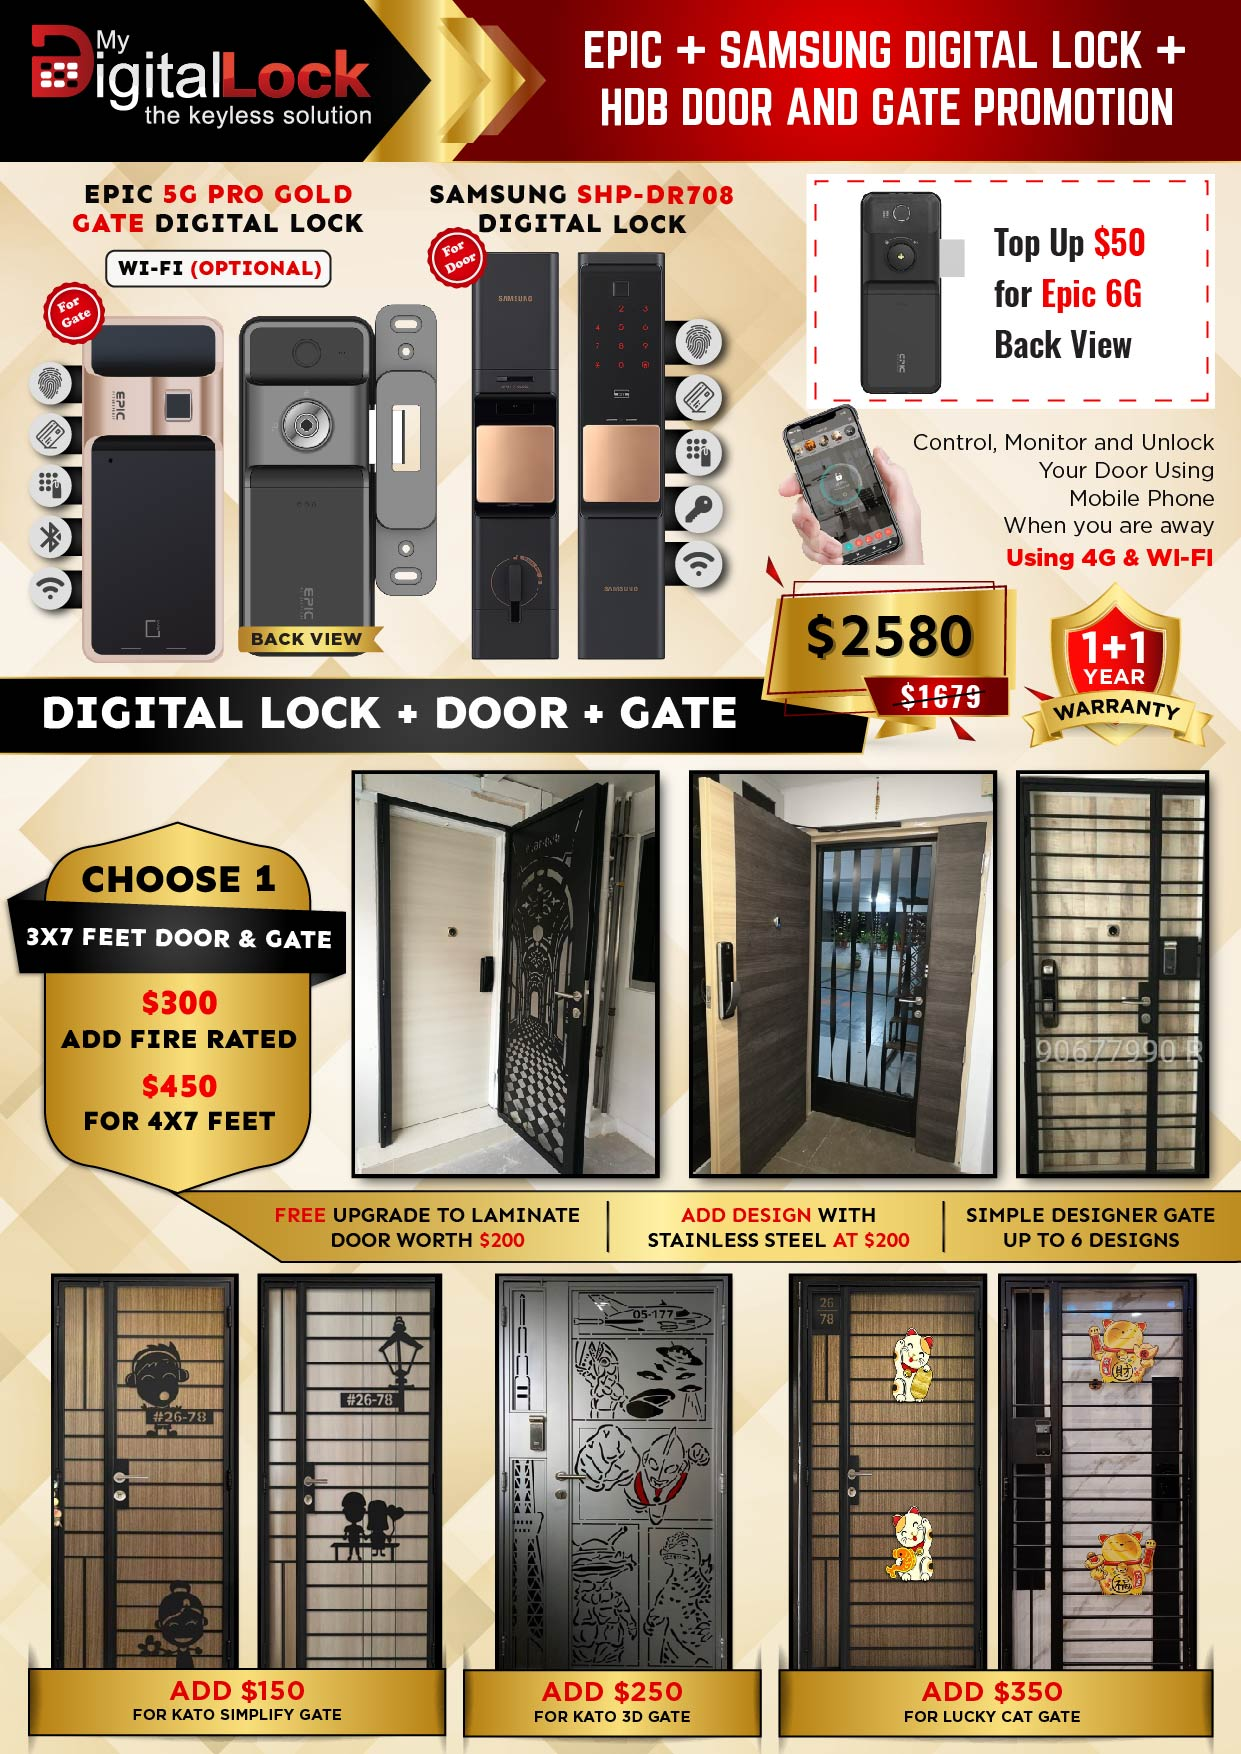 Golden-Rat-Year-HDB-Door-and-Gate-Promotion-with-EPIC-5G-PRO-Gold-and-Samsung-SHP-D